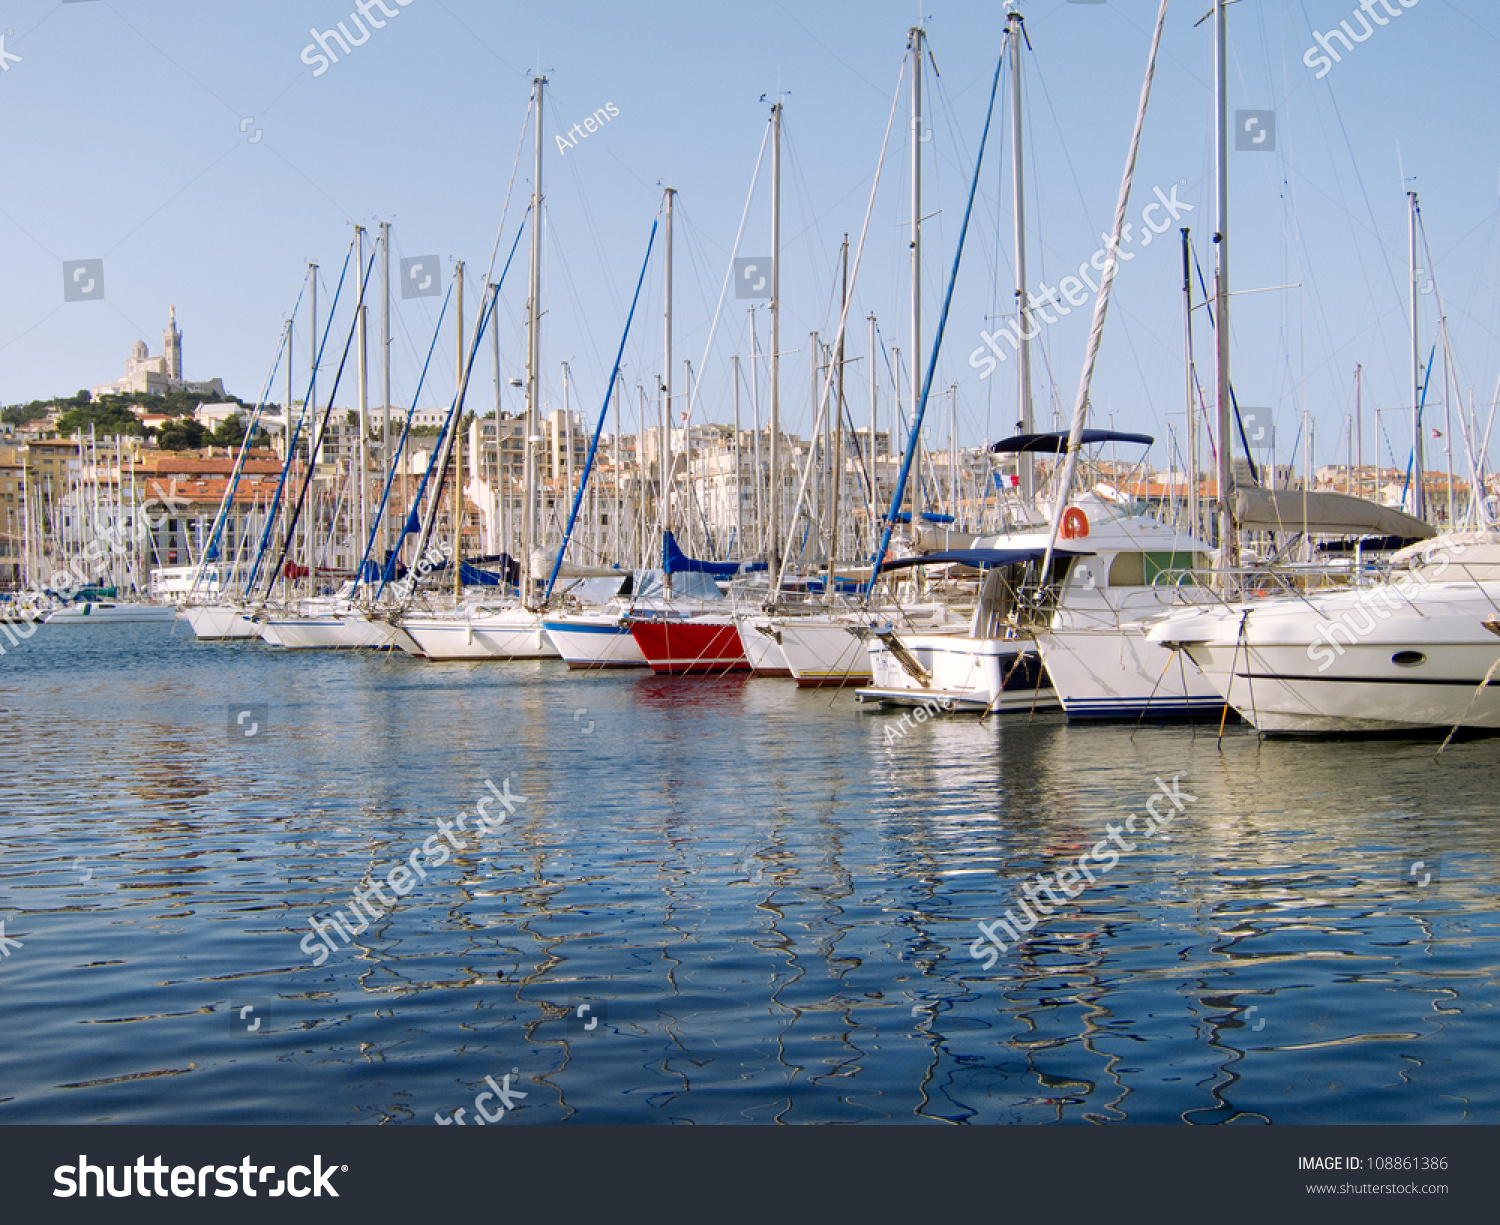 marseille old port yachts seascape stock photo 108861386. Black Bedroom Furniture Sets. Home Design Ideas